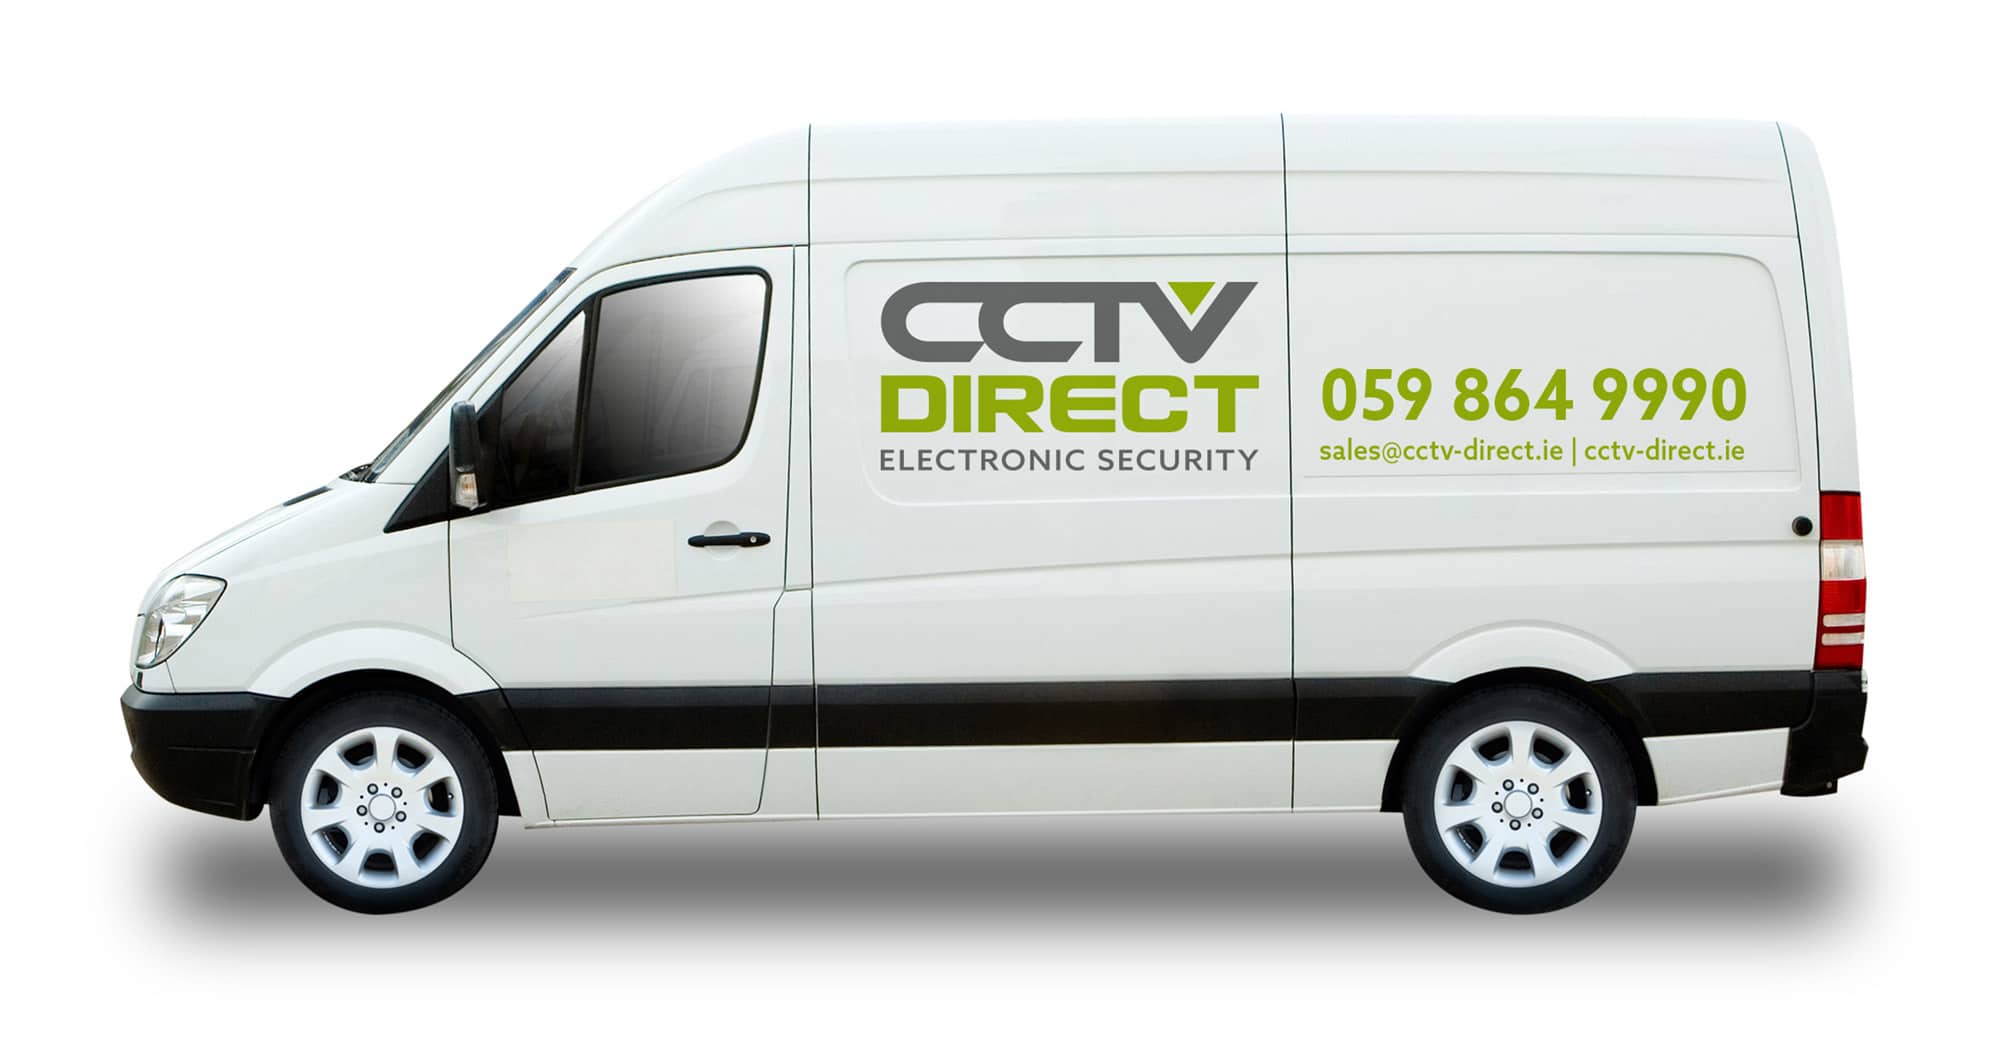 CCTV Direct | Burglar Alarms | Intruder Alarms